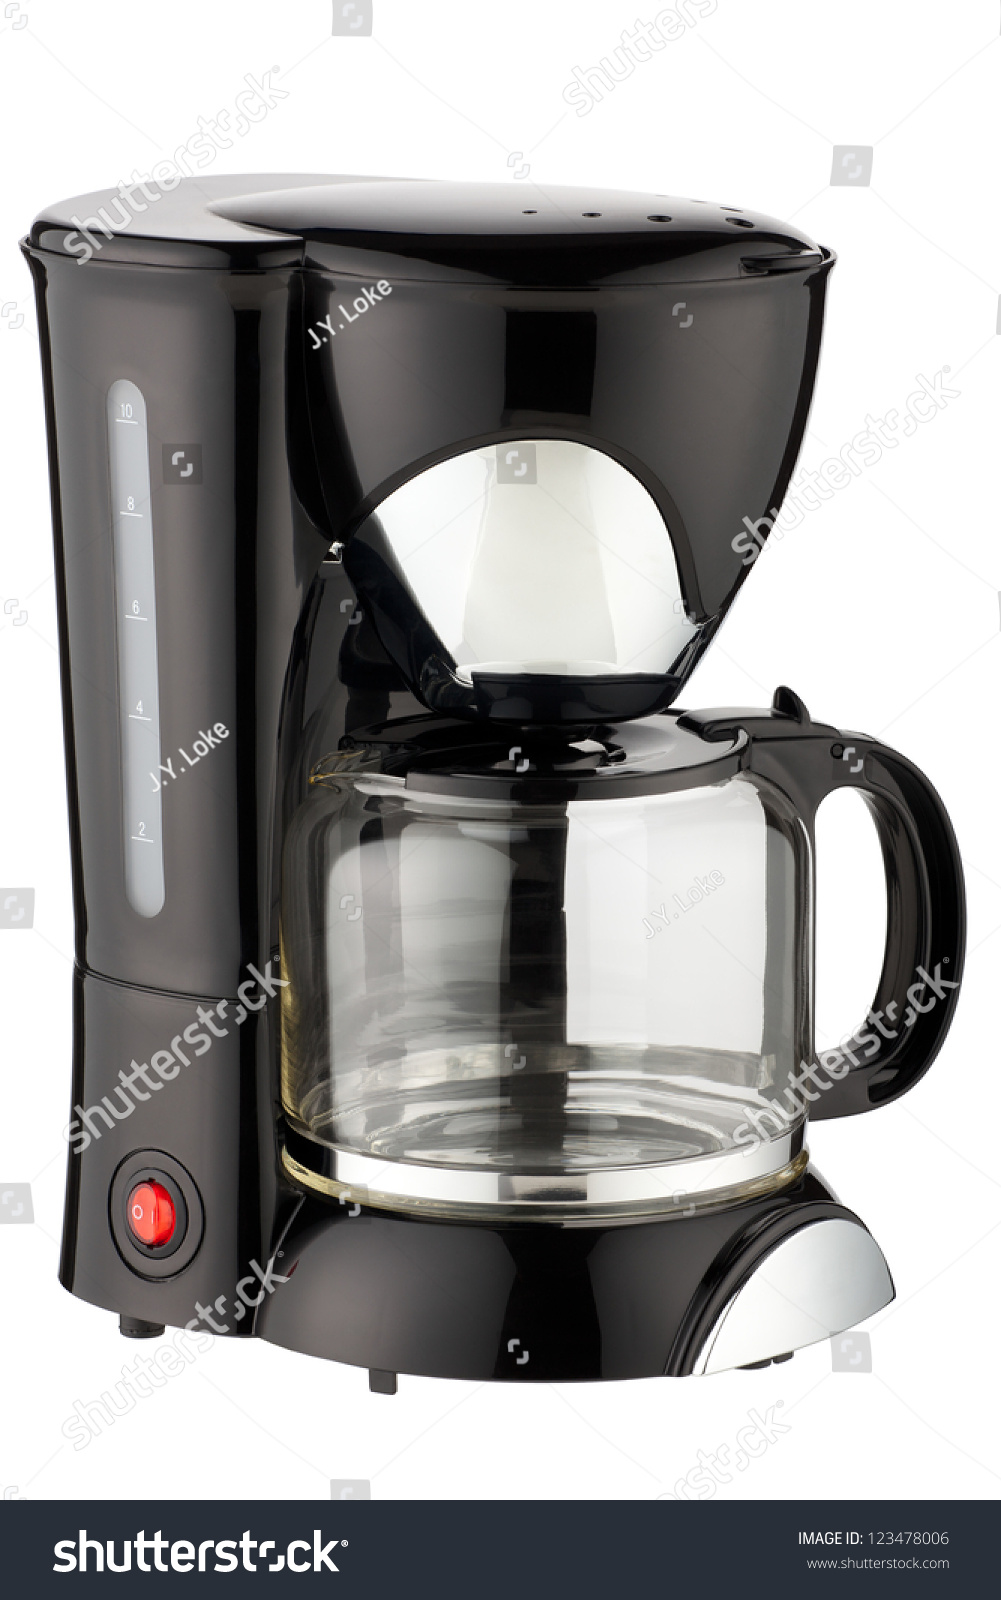 Coffee Maker Z Wave : Coffee Maker Stock Photo 123478006 : Shutterstock